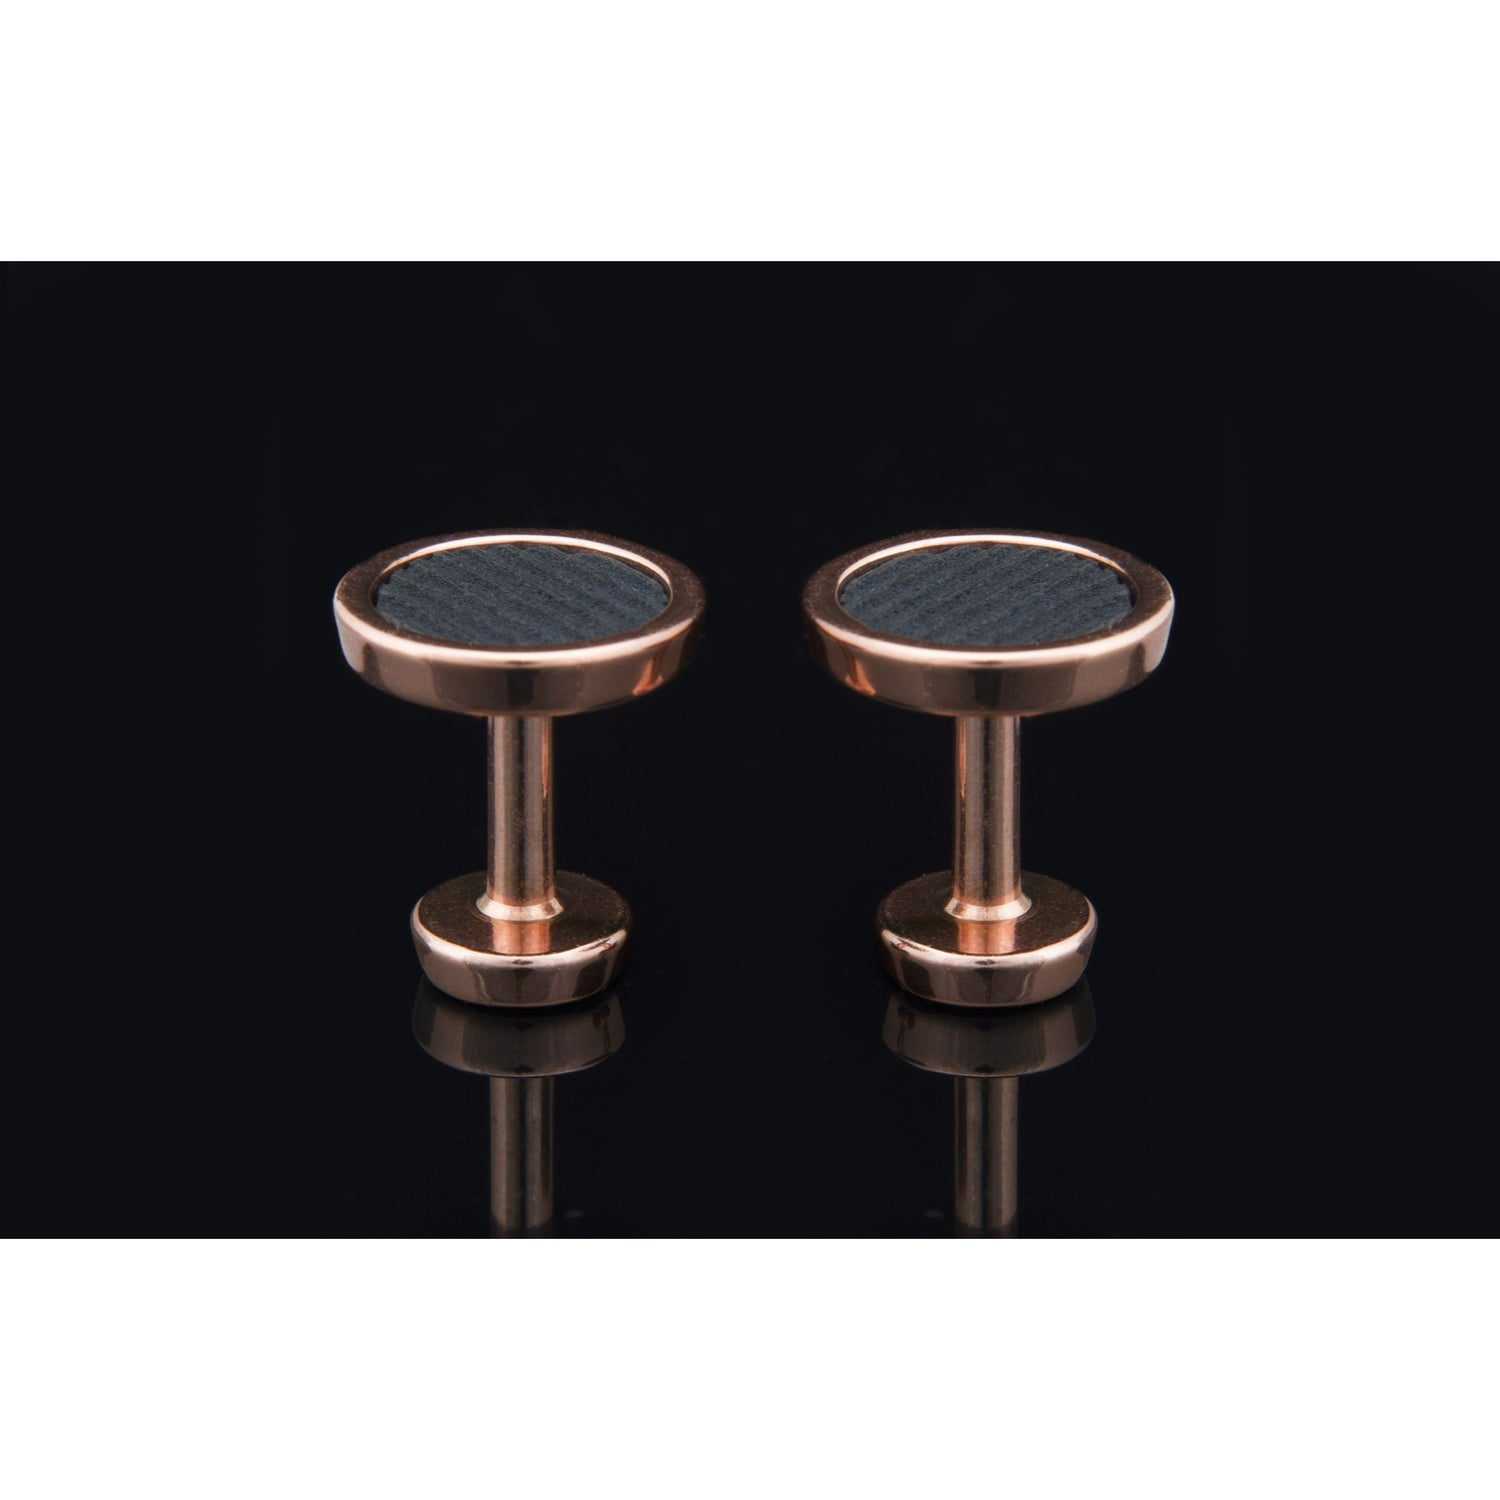 Lockstone One Range Rose Gold Cufflinks - Tittup Unique Aromatherapy & Jewellery